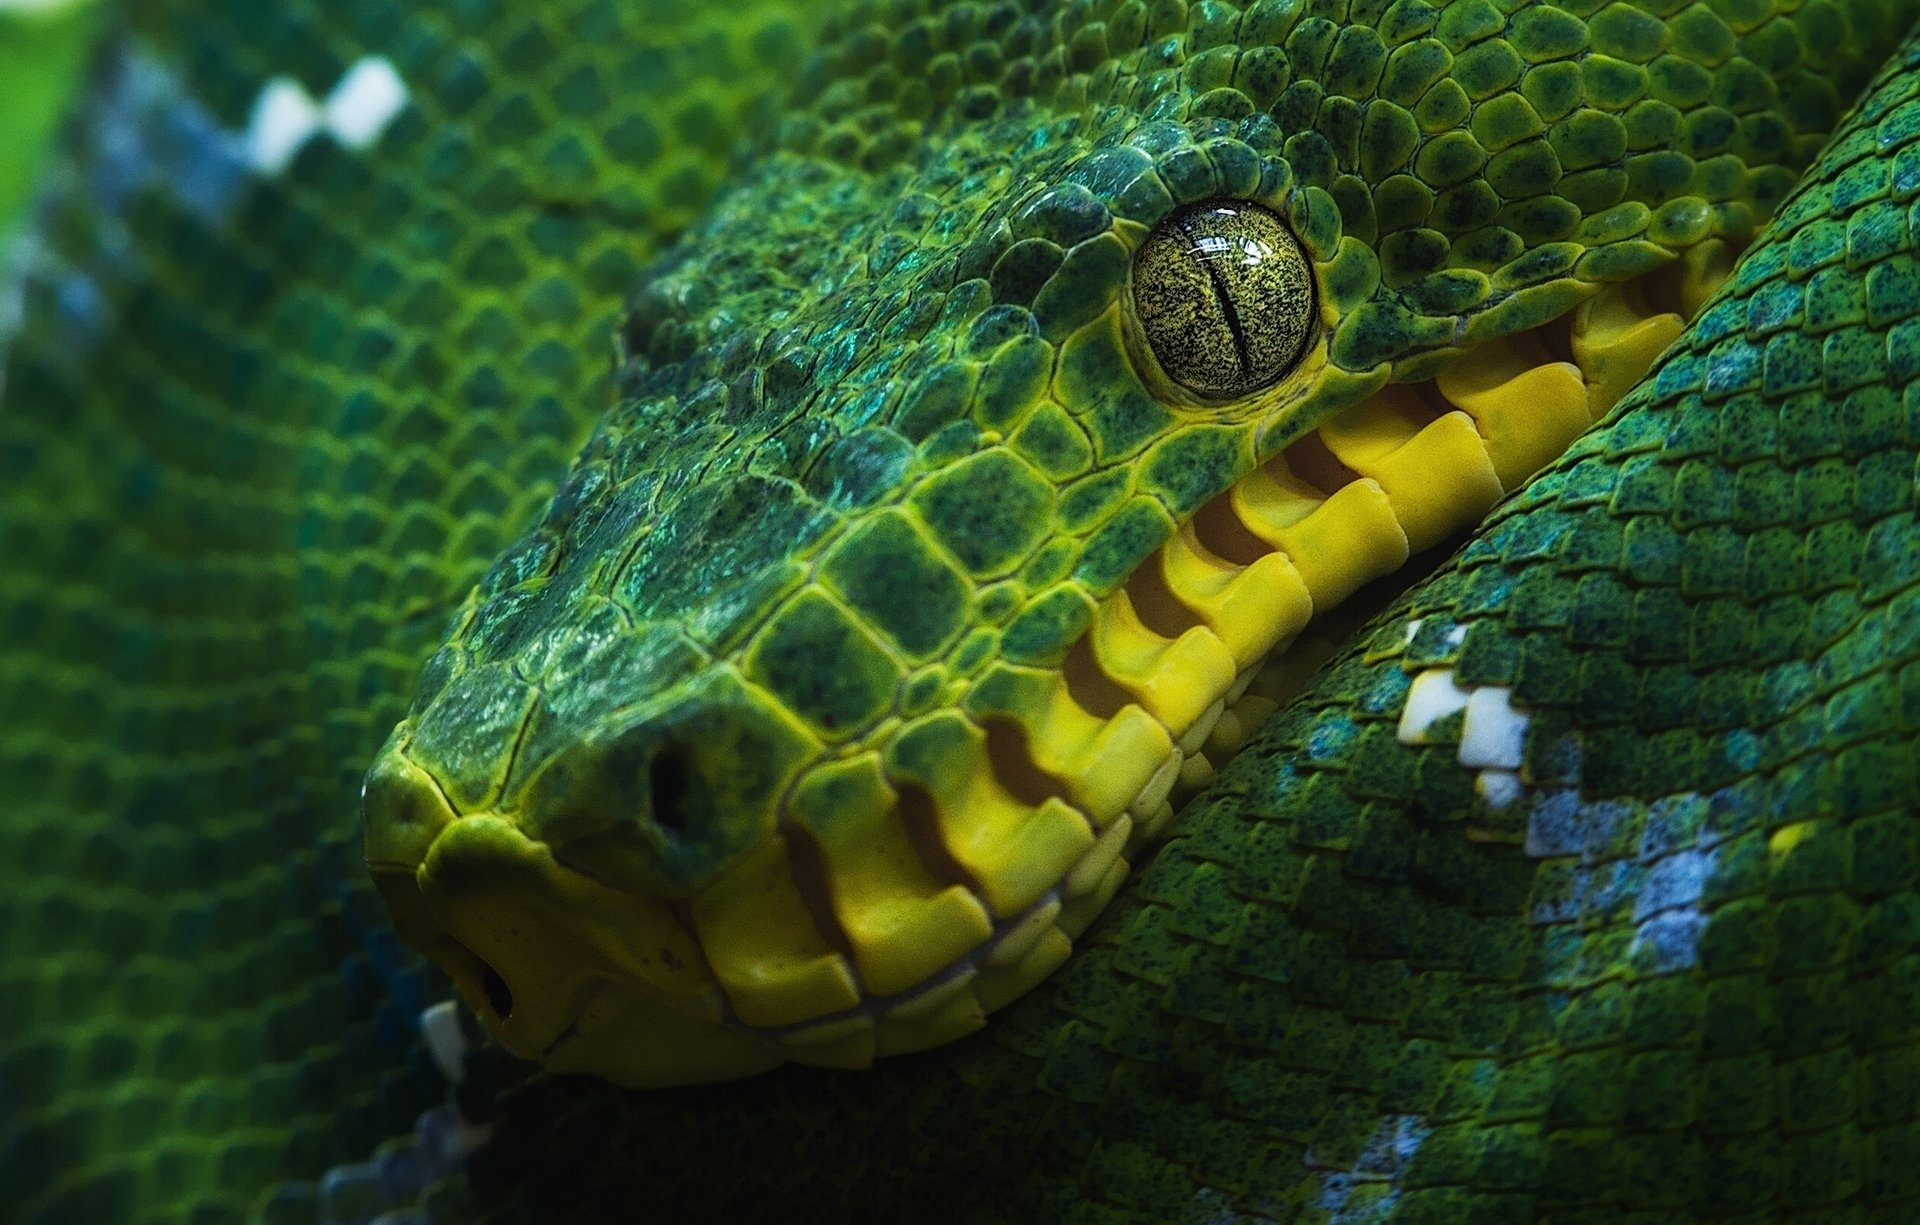 Green Tree Python Full HD Wallpaper And Background Image